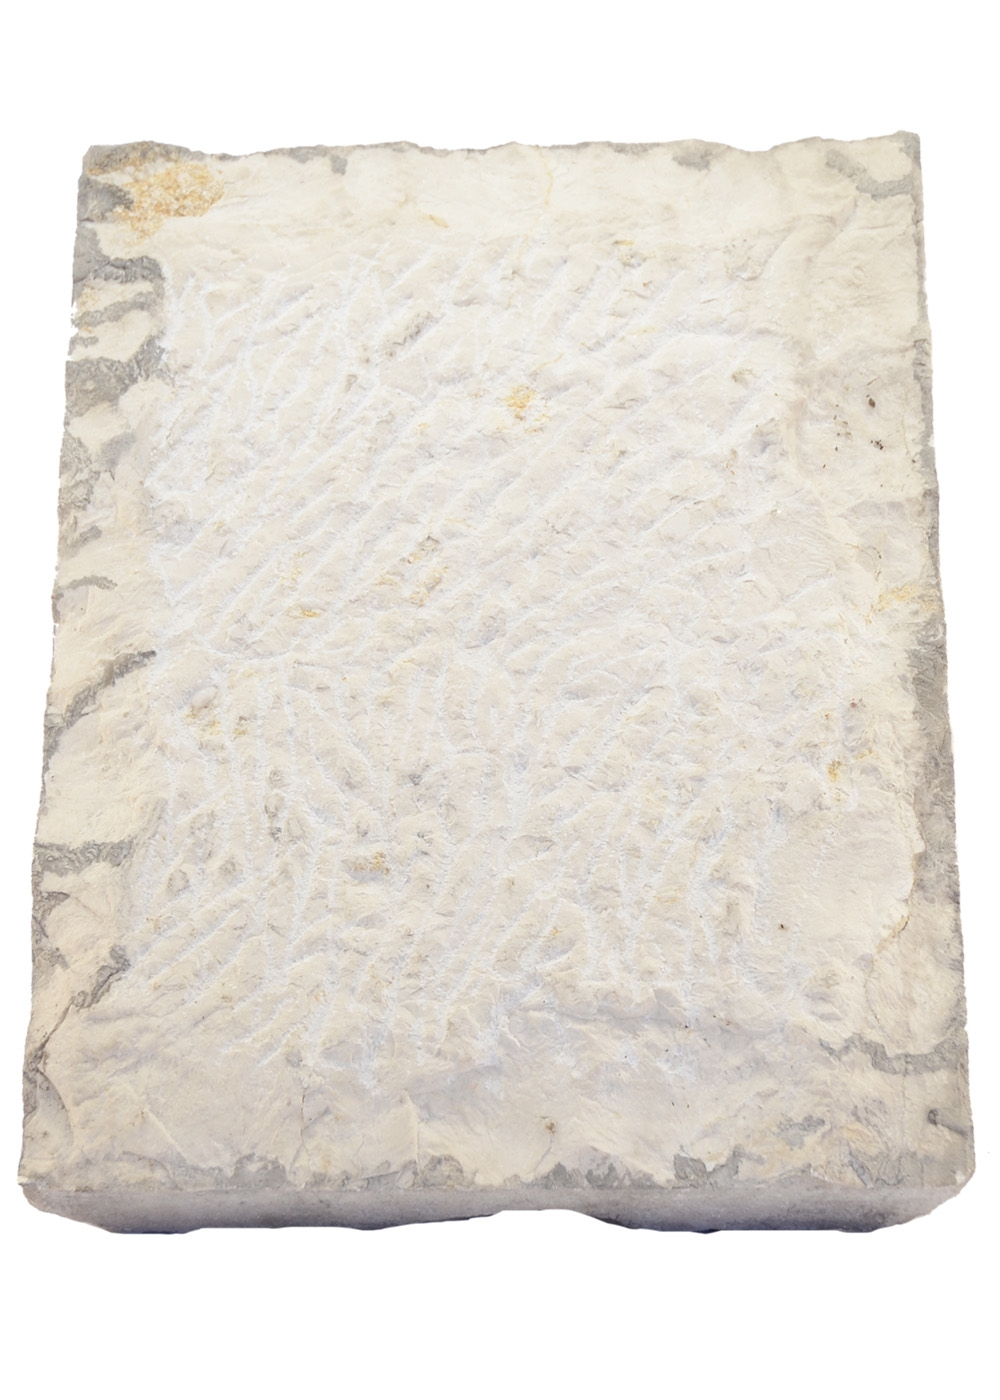 Best price Marble Relief With A Vintage | Italy2us.com